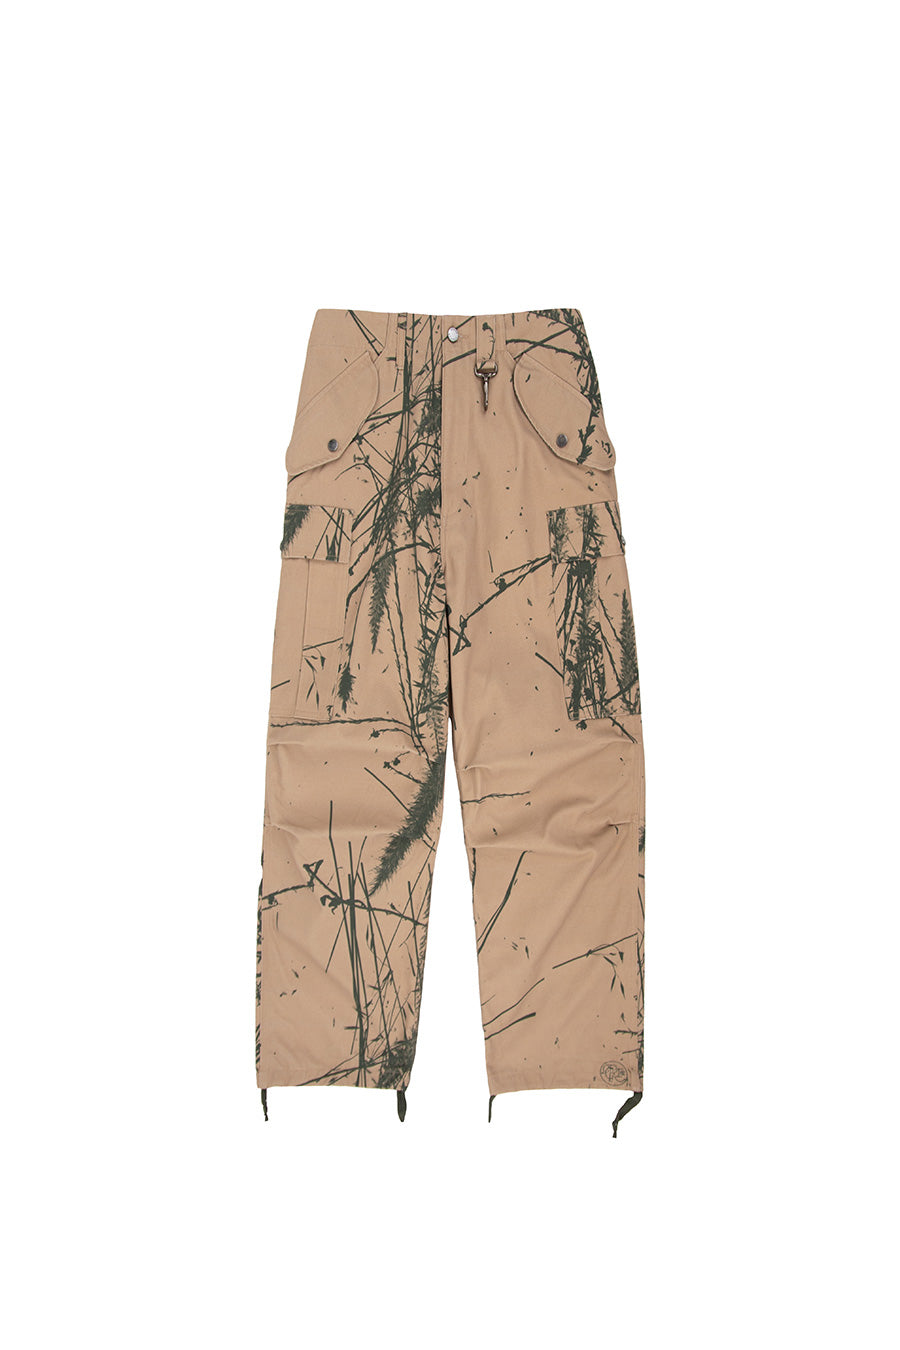 Reese Cooper - Canyon Camo Brushed Cotton Cargo Pants | 1032 SPACE